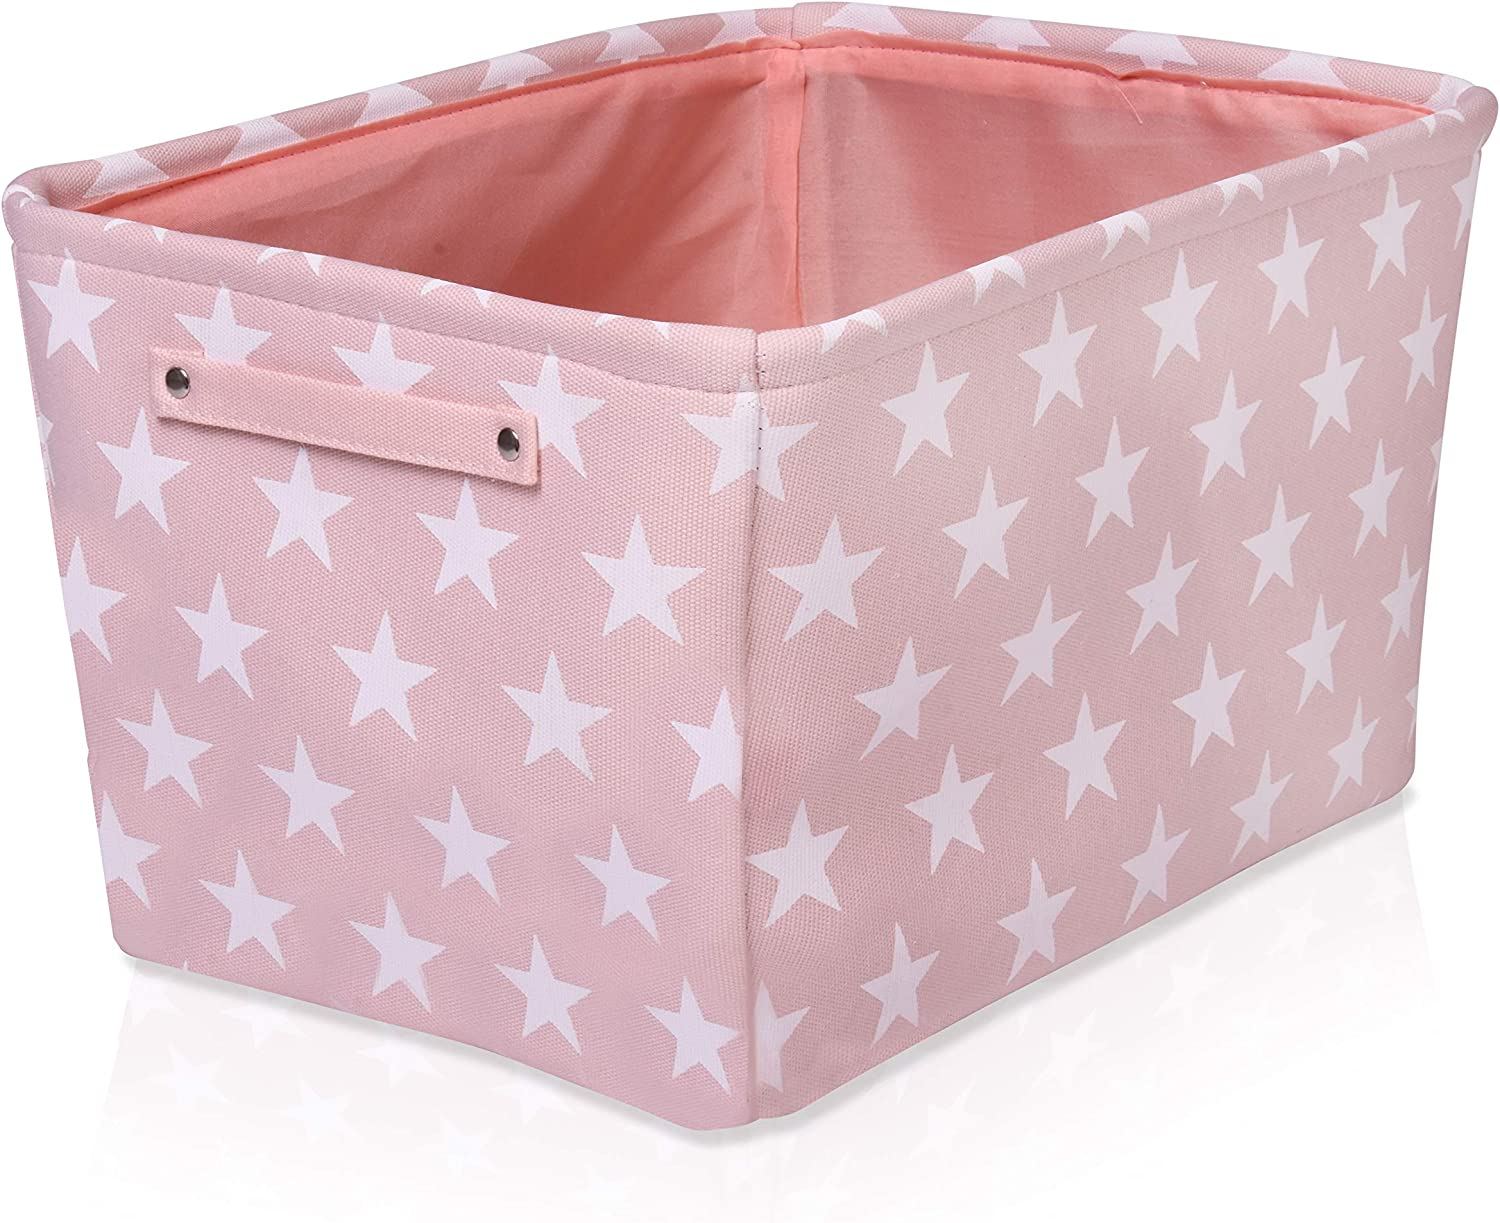 Pink Star Canvas Storage Basket Rectangle Fabric Basket With White Stars Perfect For Household Storage Fabrics Or Toys Size 40cms X 30cms X 25cms Amazon Co Uk Kitchen Home